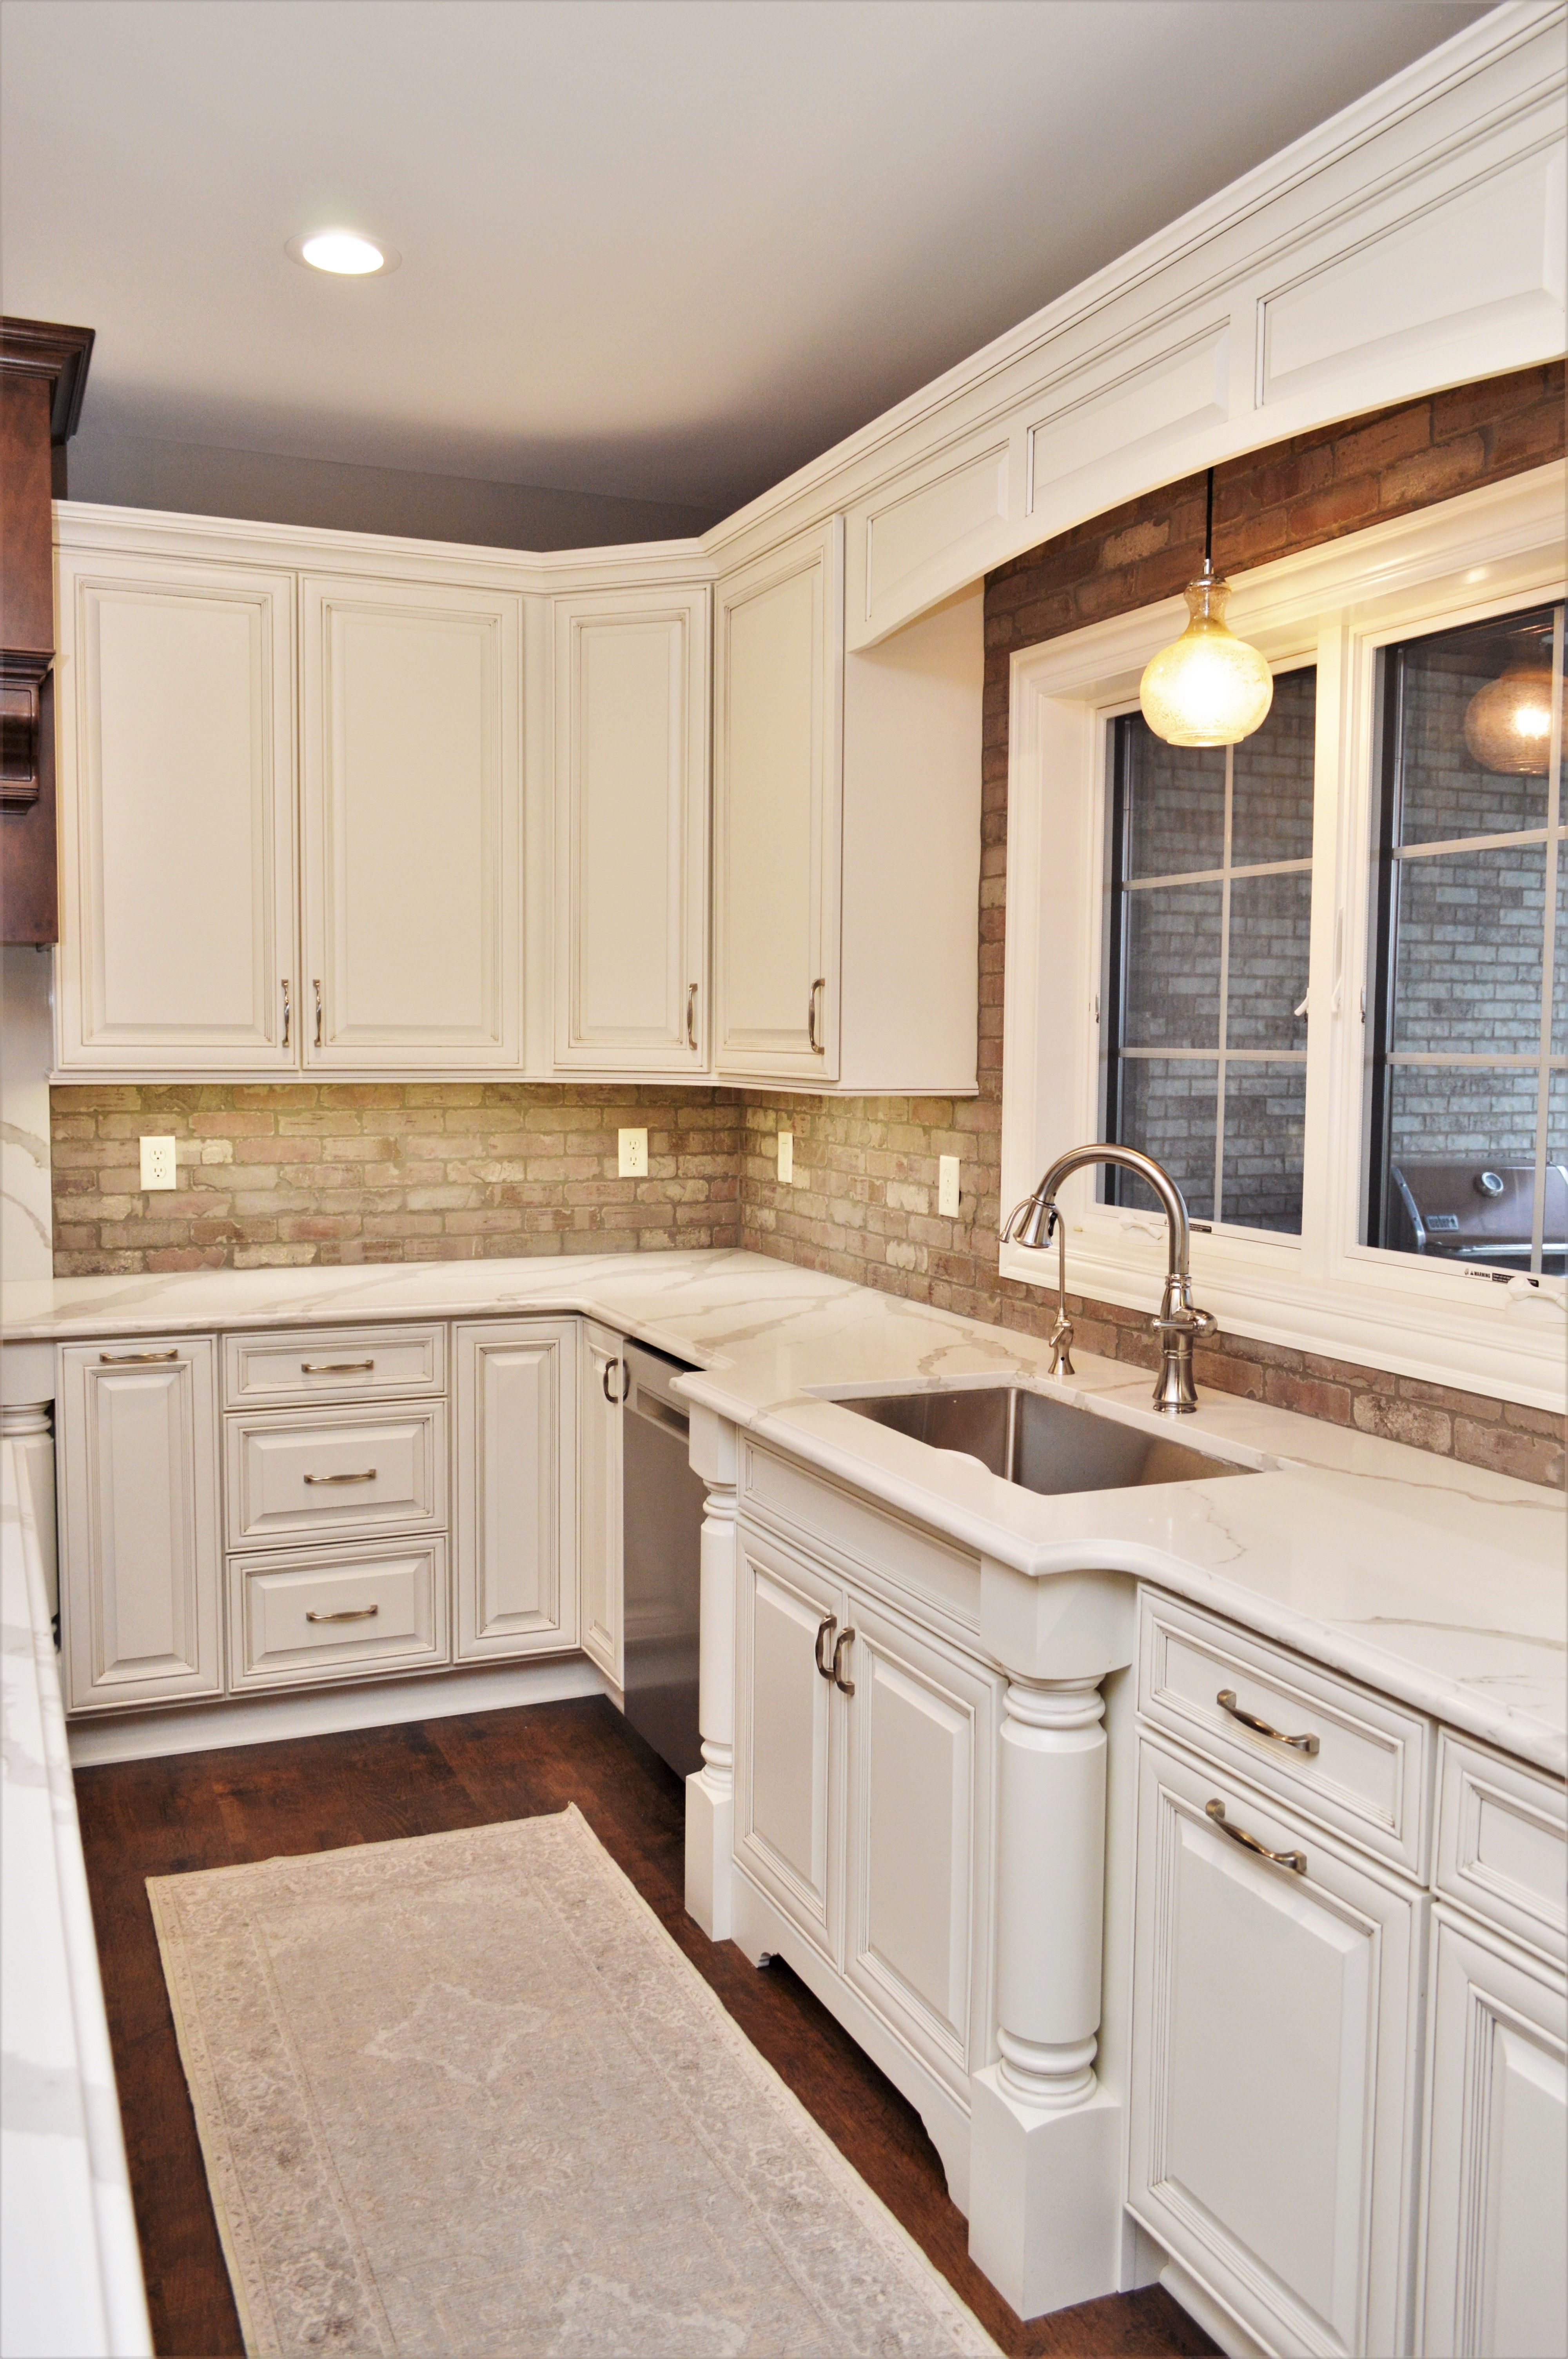 Pin on Maple Cabinetry: Bailey's Cabinet Customer Kitchens